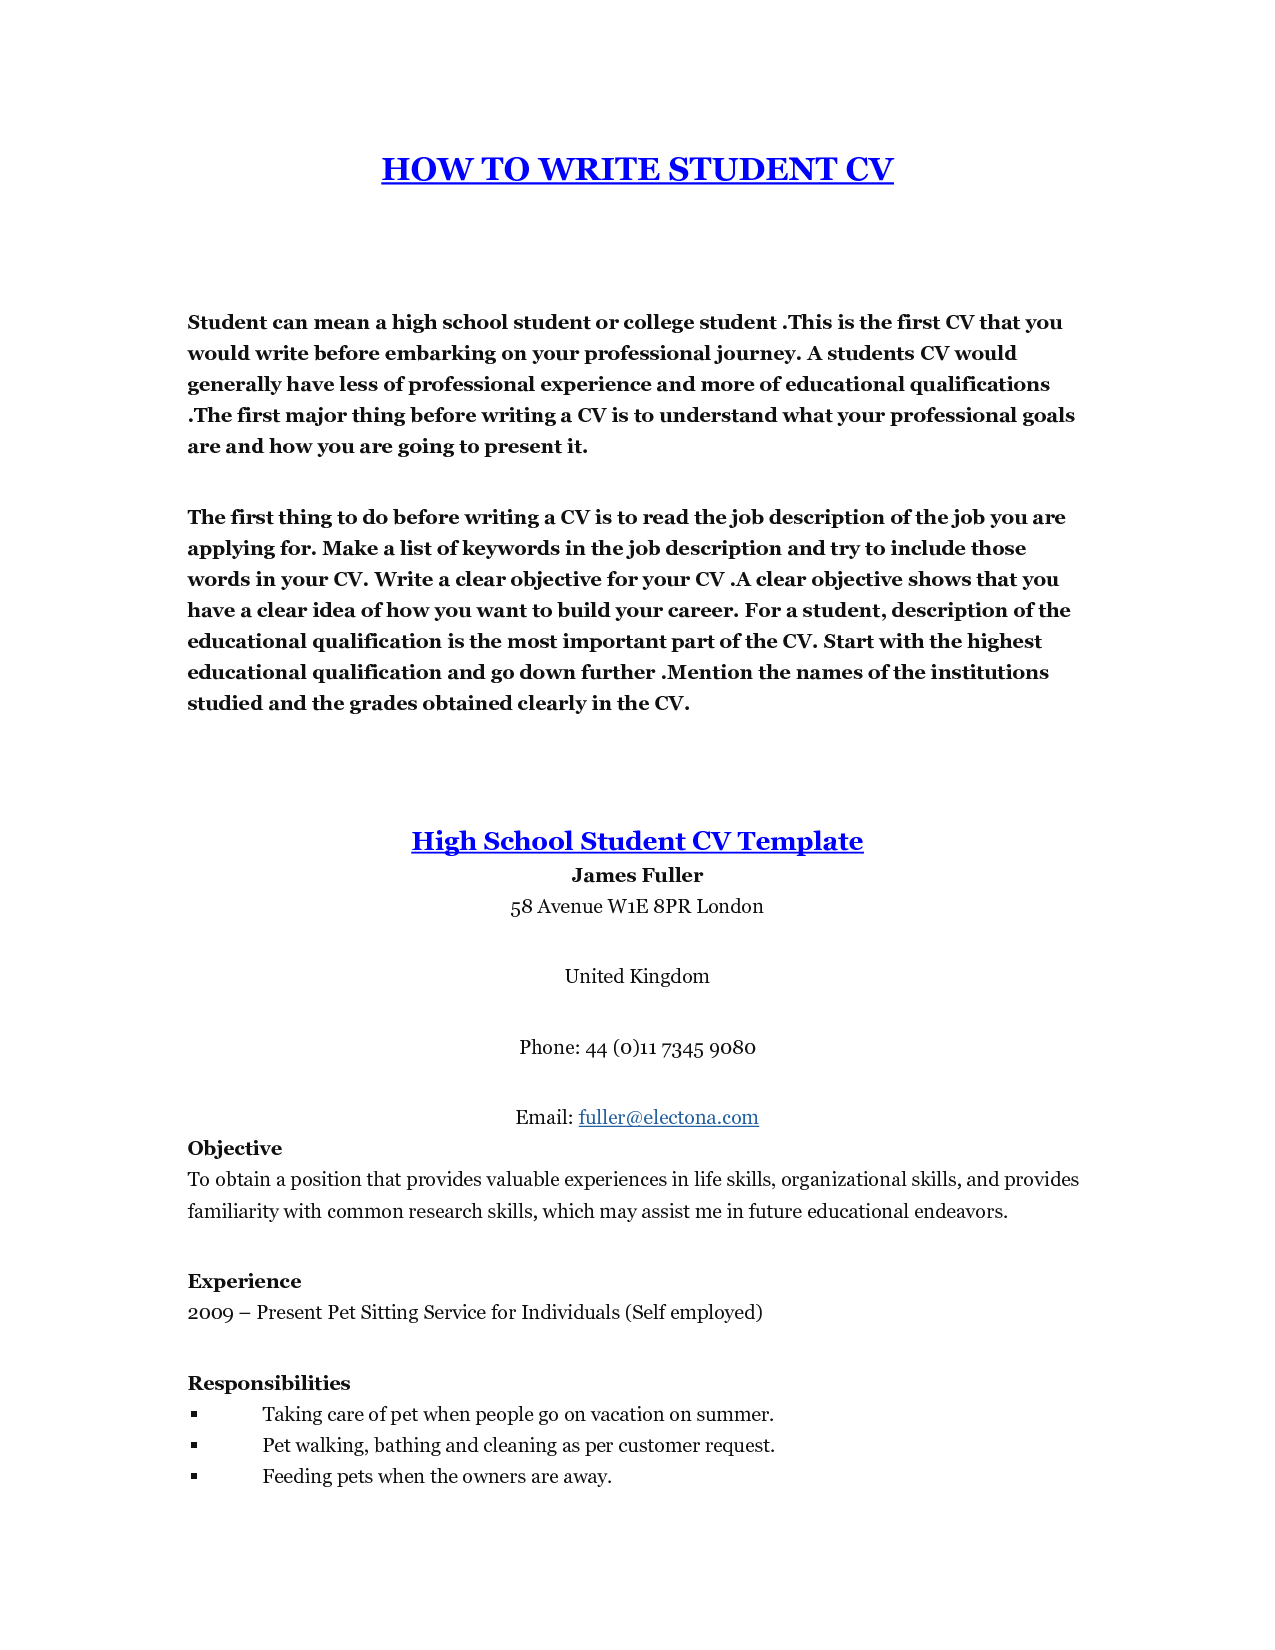 Resume For A Highschool Student Student Resume Template  Httpwwwjobresumewebsitestudent